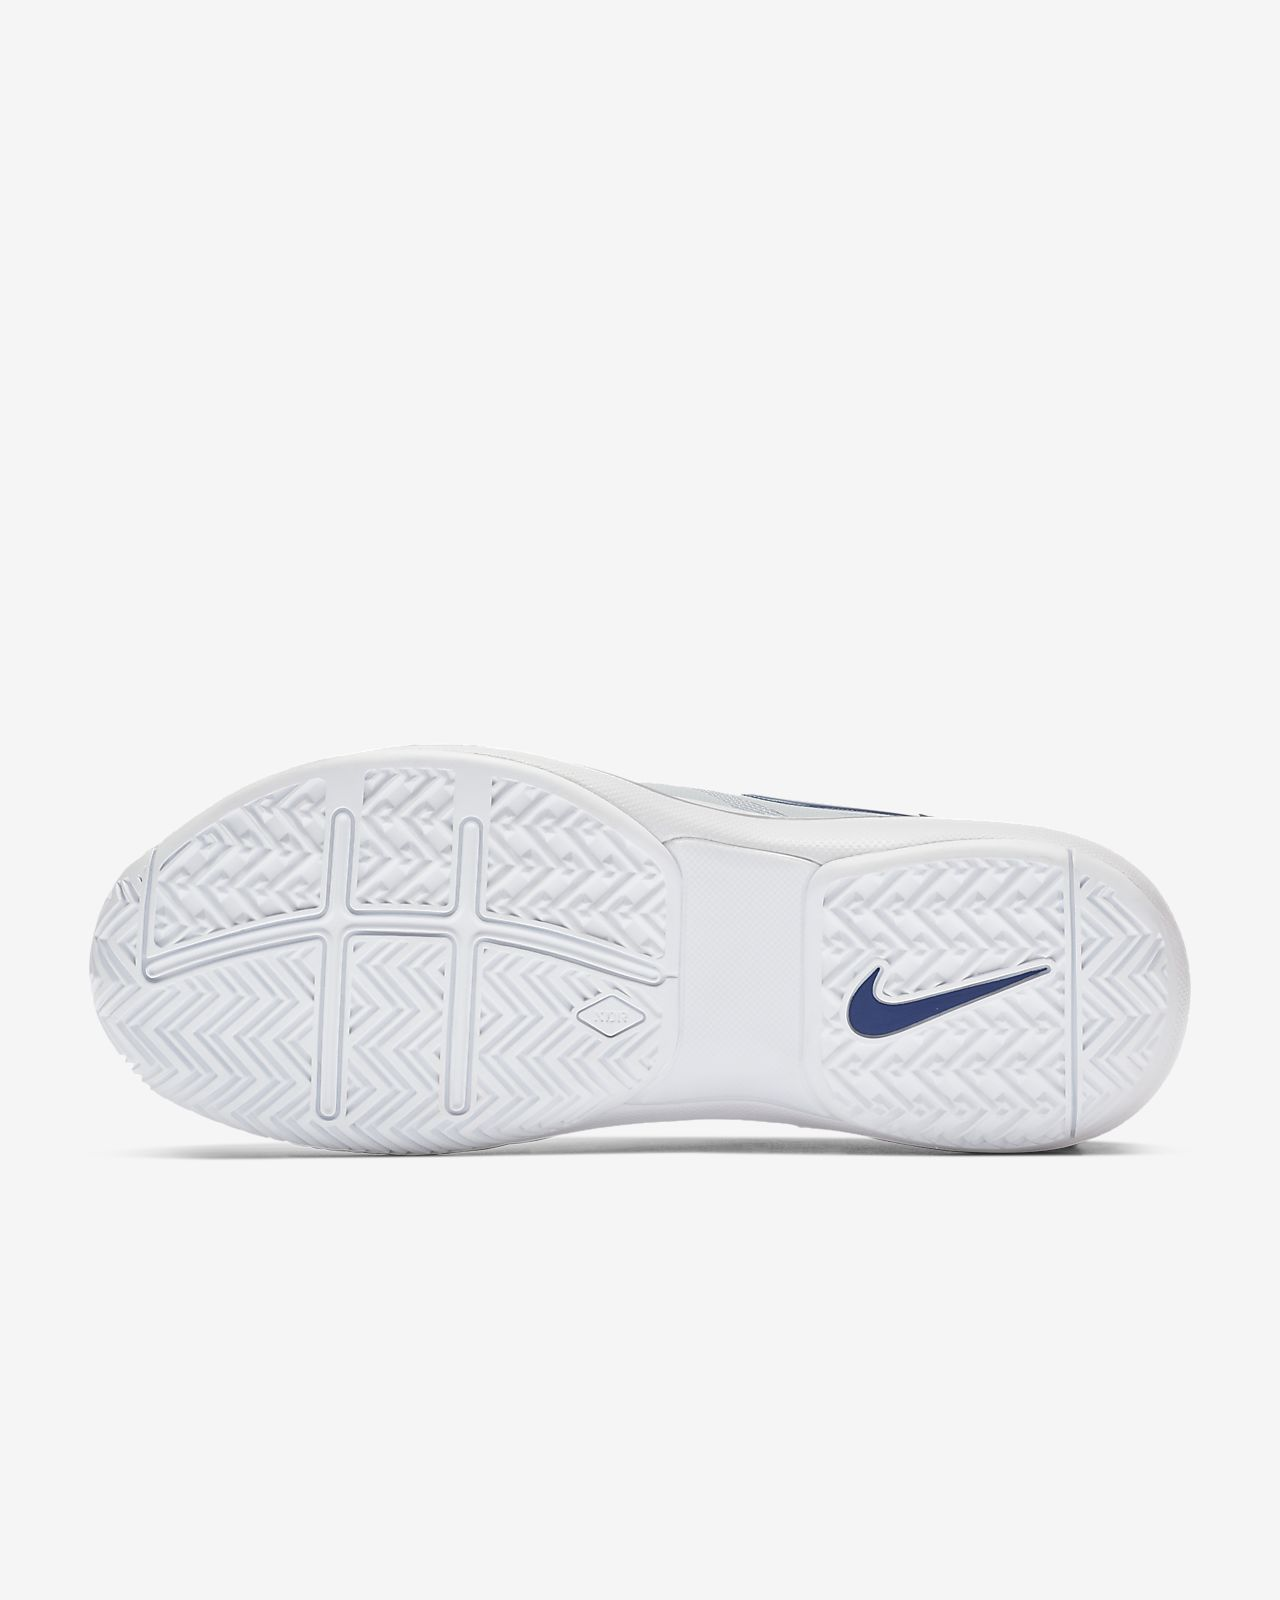 c8289d91b3e64a Low Resolution NikeCourt Air Zoom Prestige Women s Hard Court Tennis Shoe  NikeCourt Air Zoom Prestige Women s Hard Court Tennis Shoe